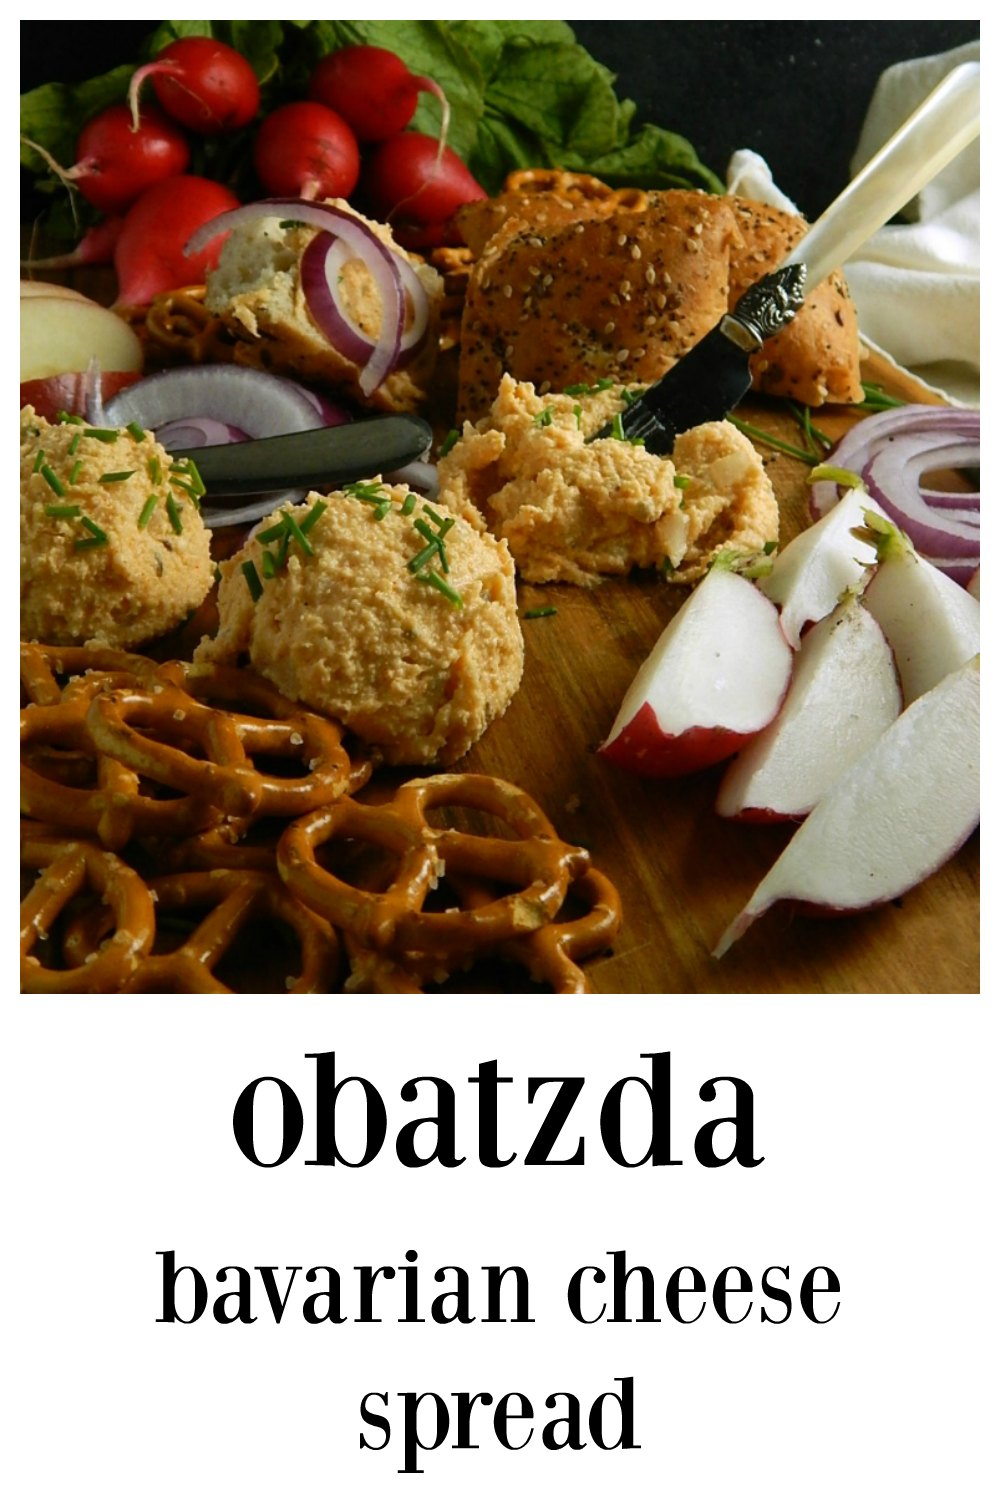 Maybe we can't all be at the Biergarten but we can have Obatzda – Bavarian Cheese Spread any time...simple and so flavorful! #GermanCheeseSpread #GermanFood #OctoberfestFood #BavarianCheeseSpread #Obatzda